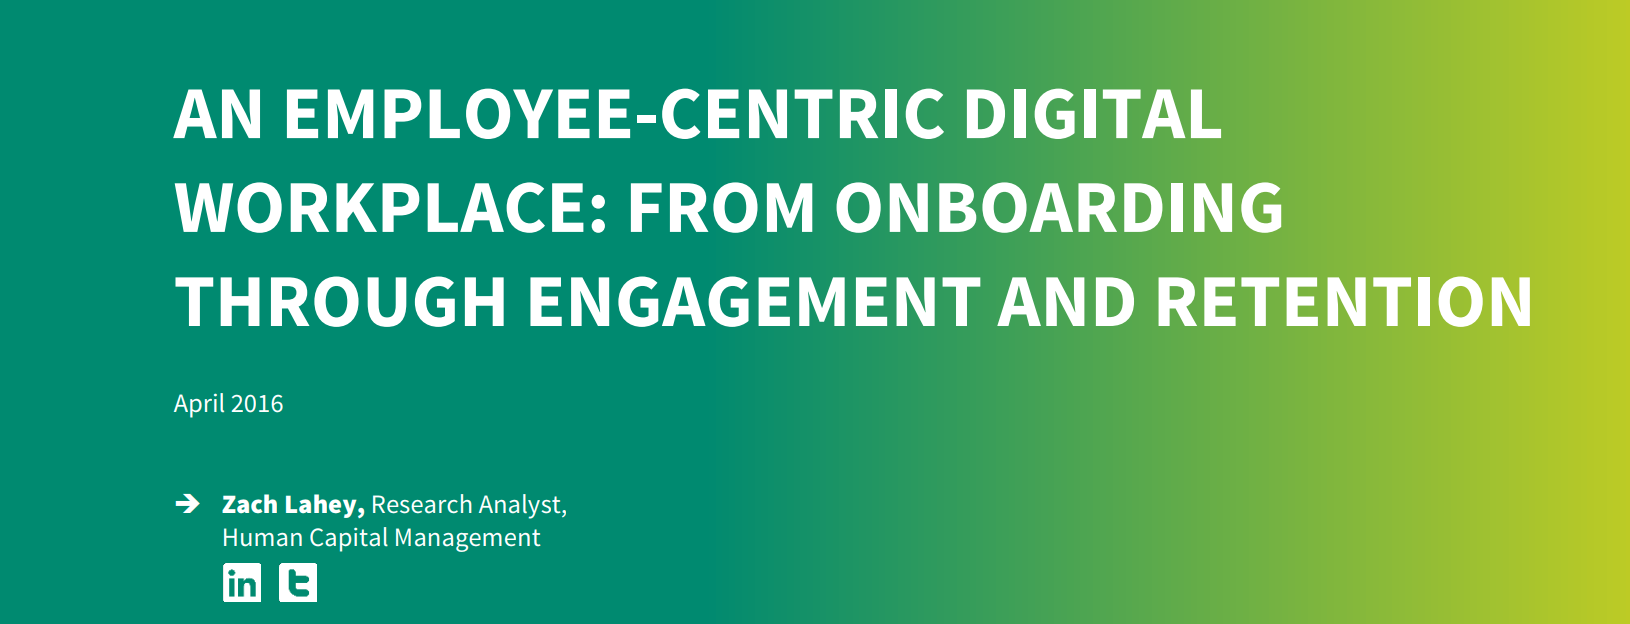 An Employee Centric Digital Workplace